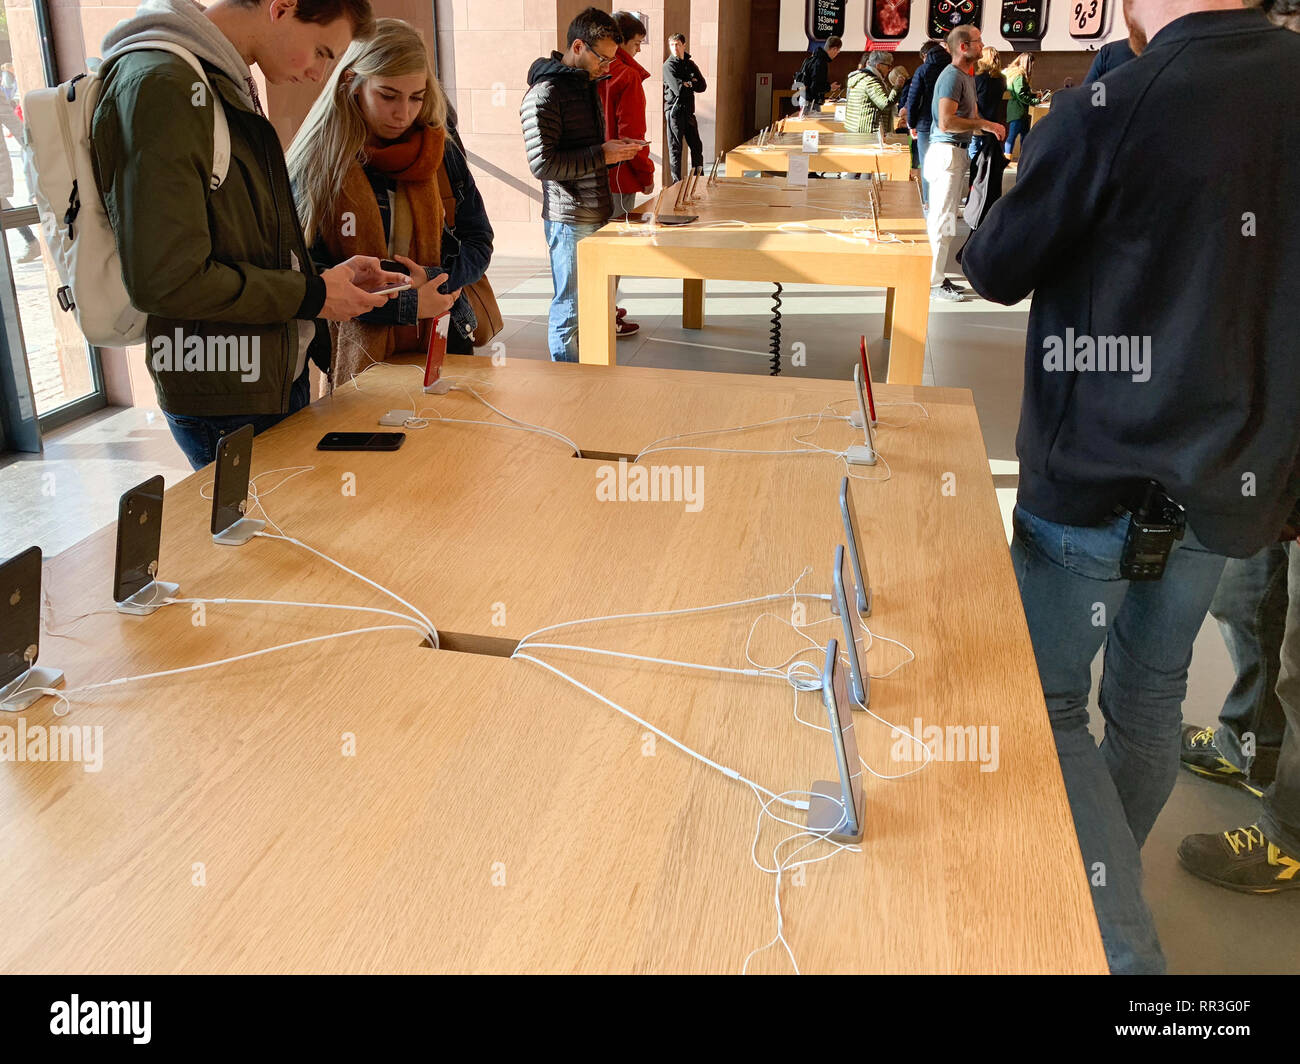 PARIS, FRANCE - OCT 26, 2018: Curiopus customers admiring the latest iPhone XR smartphone in Apple Store Computers during the launch day - Stock Image